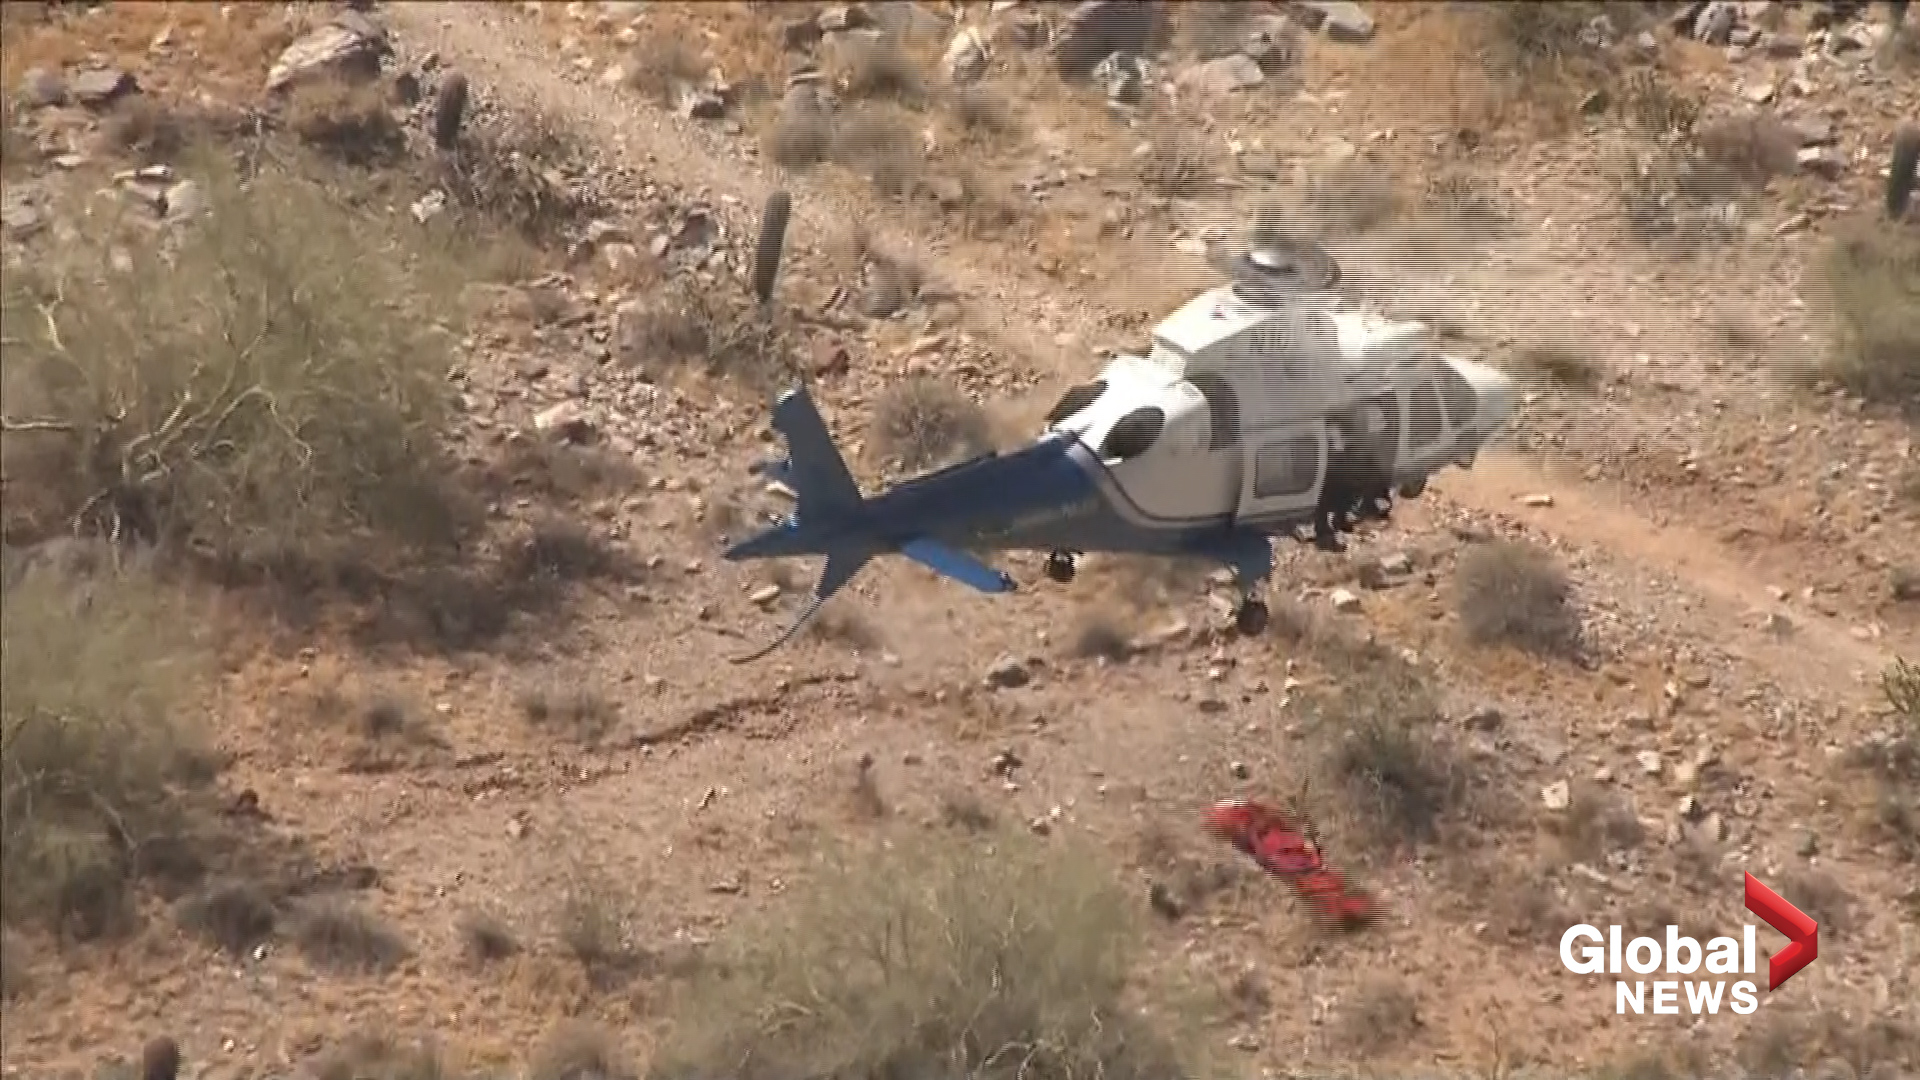 How This Helicopter Rescue in Arizona Went Terribly Wrong